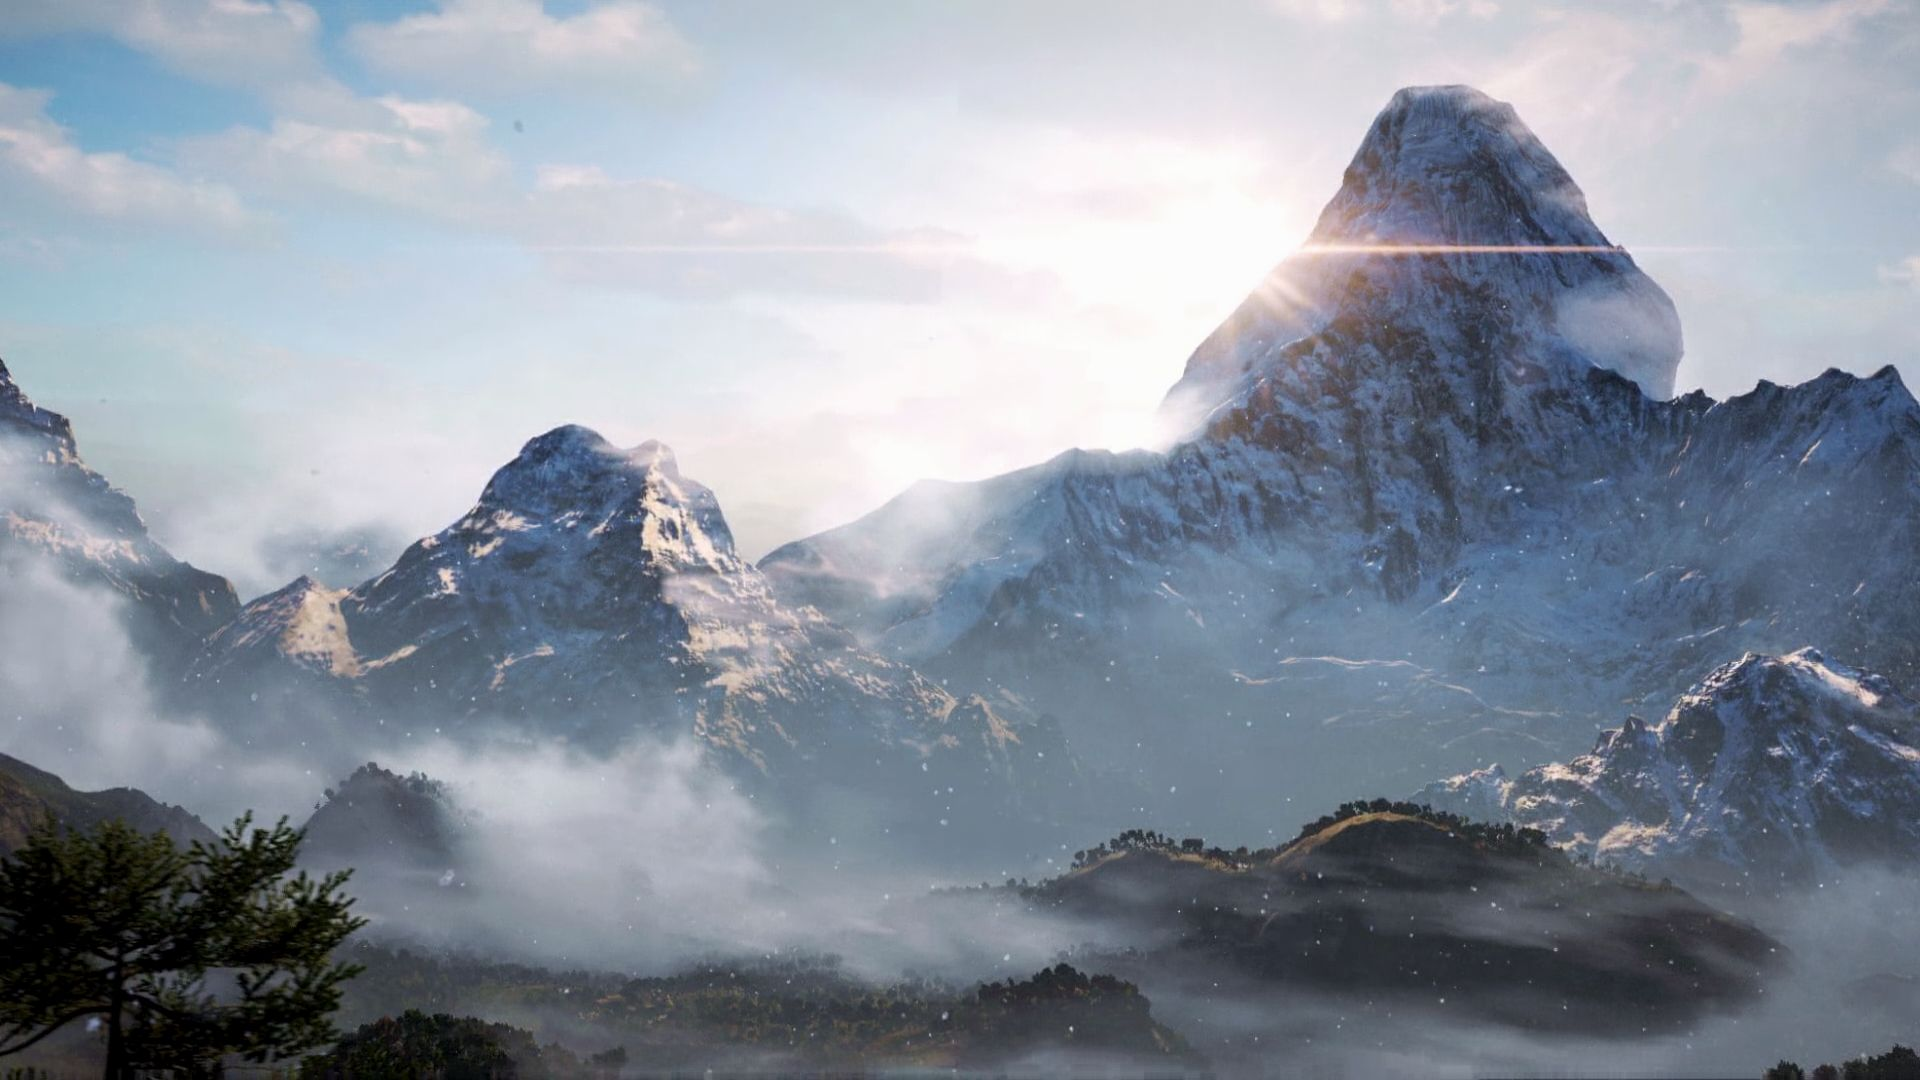 far cry 4 benchmarked - notebookcheck reviews